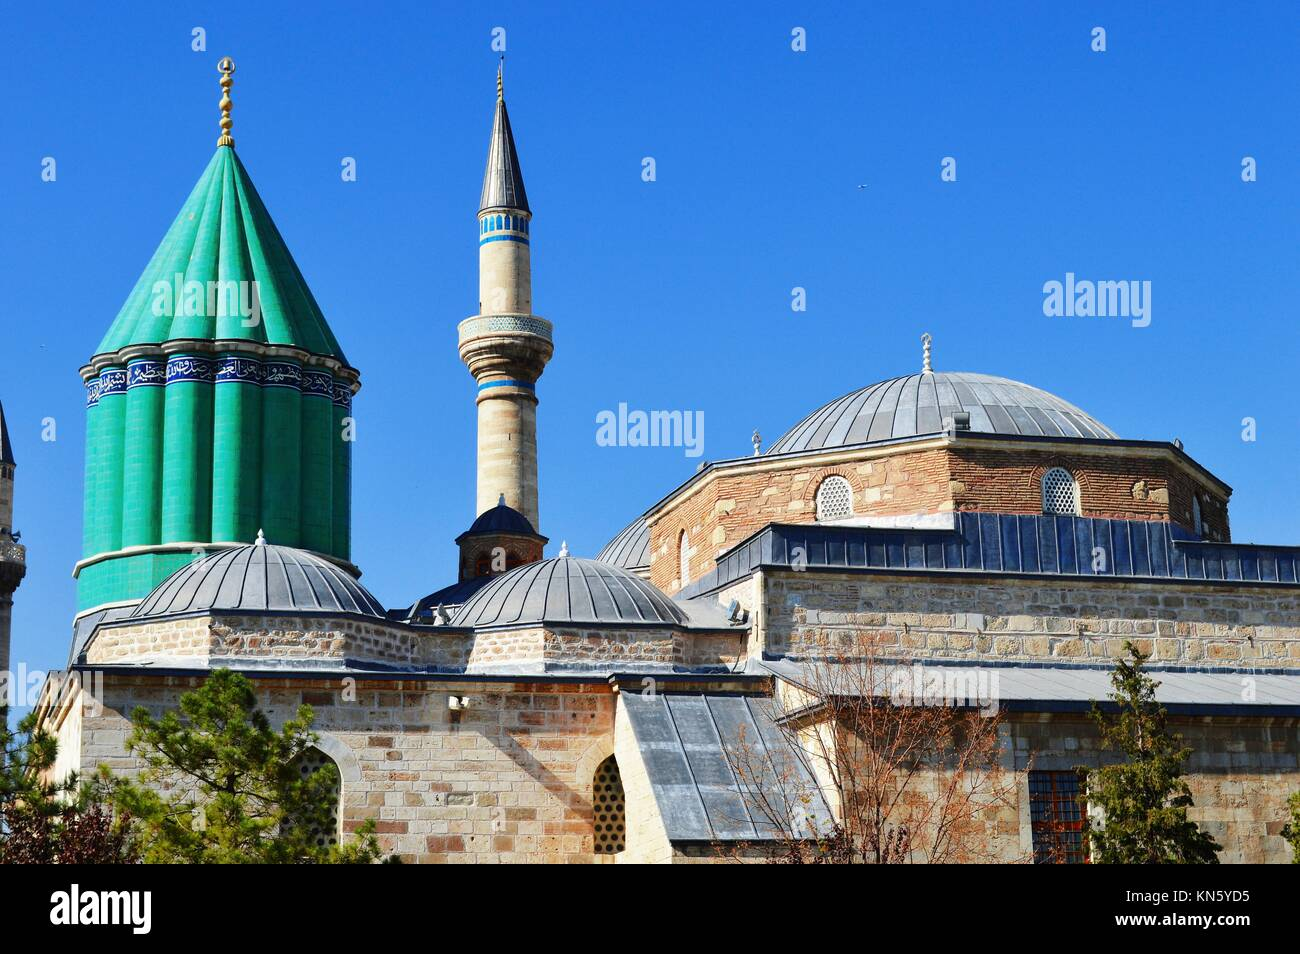 Mevlana Museum in Konya Central Anatolia, Turkey. Whirling dervishes. - Stock Image